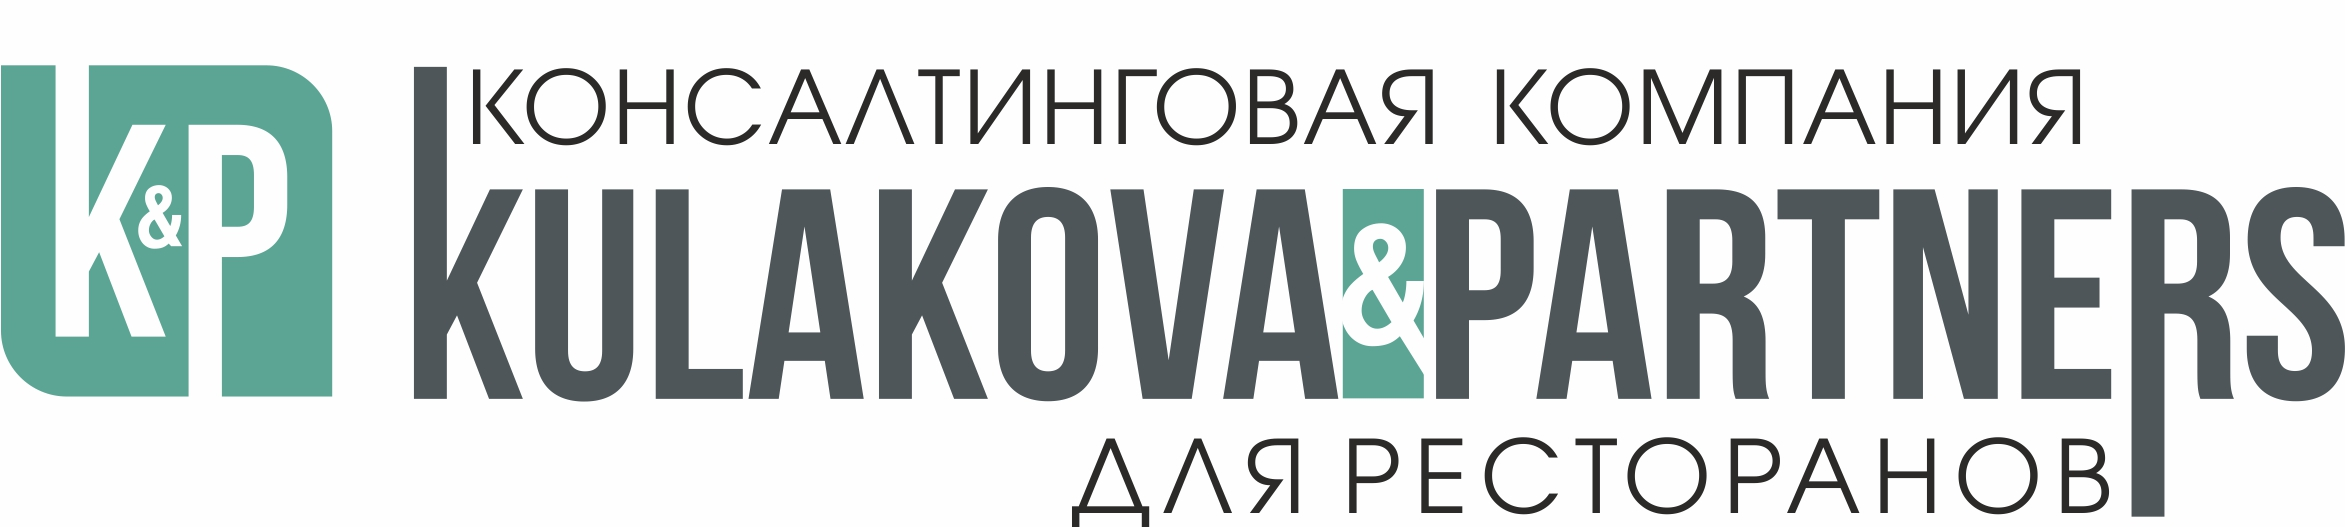 KULAKOVA&PARTNERS